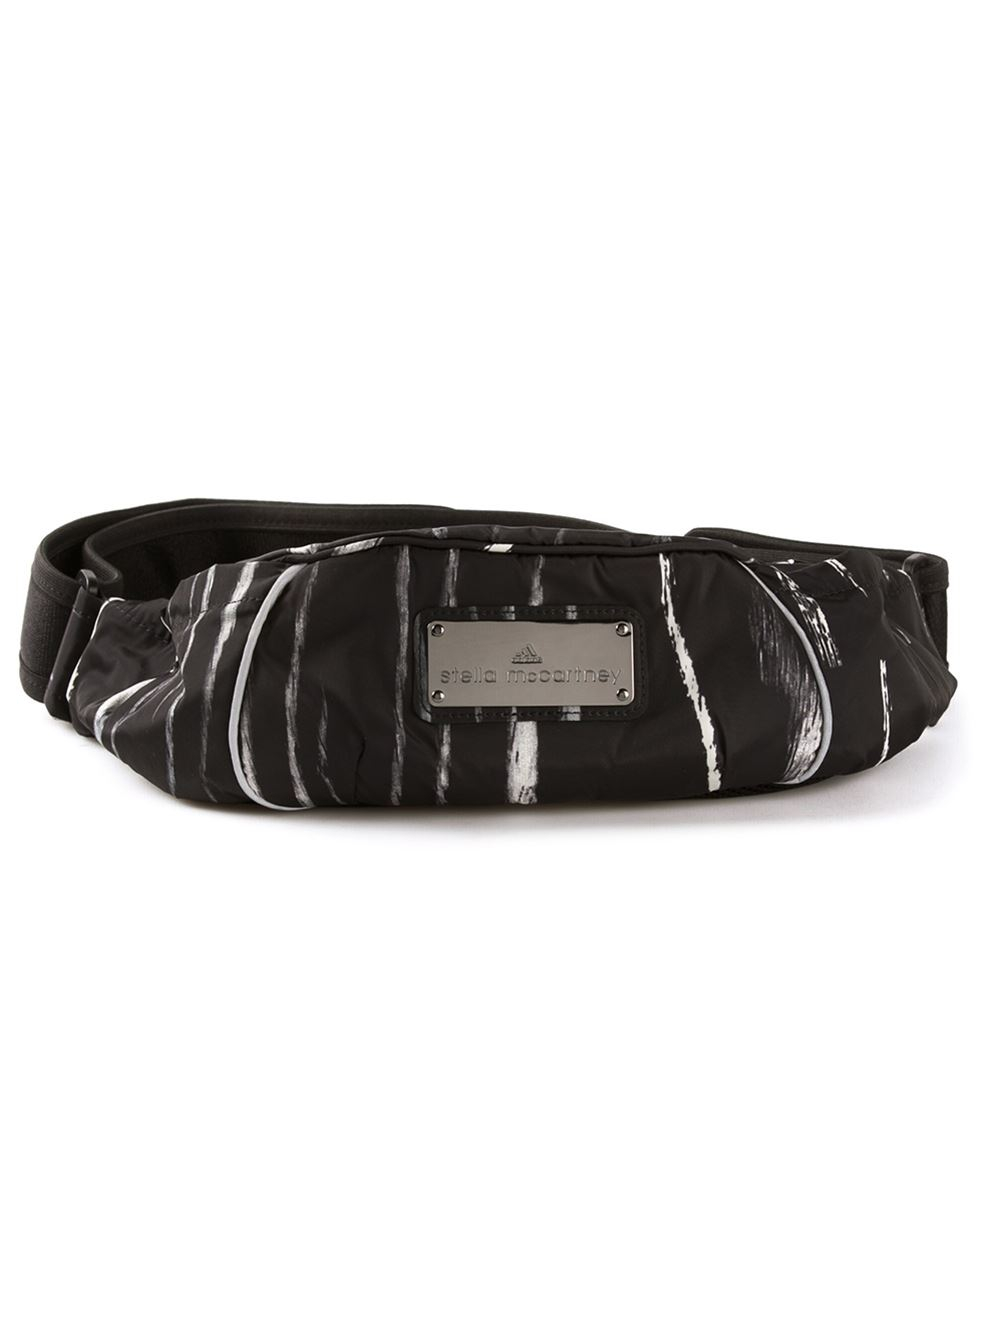 e45a507003 Lyst - adidas By Stella McCartney Bumbag Fanny Pack in Black